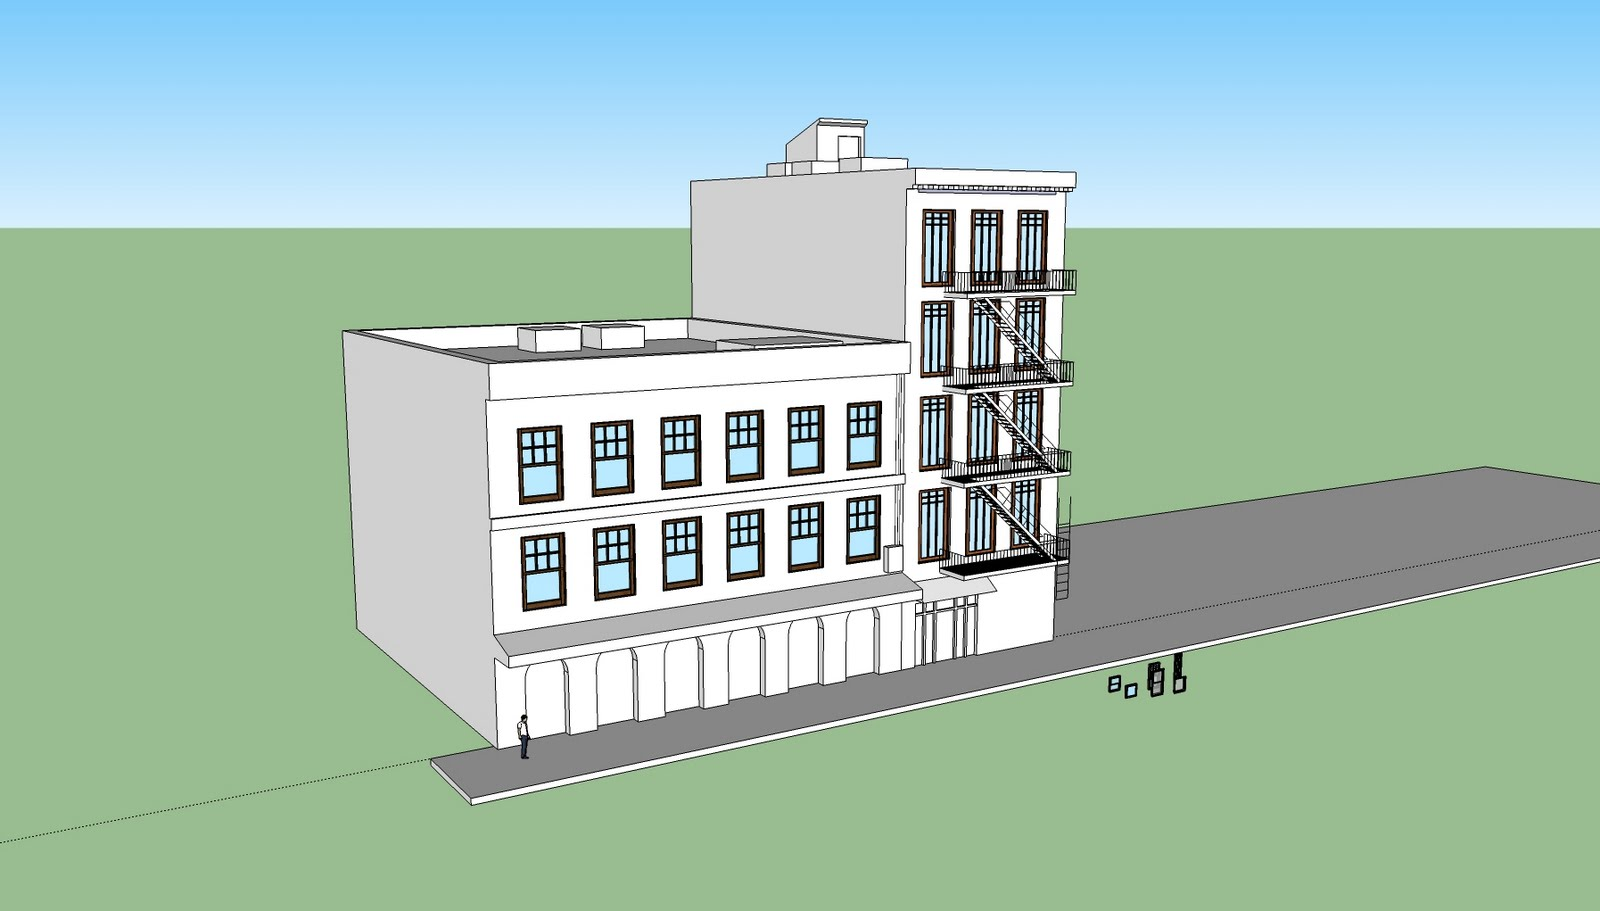 Brian churilla sketchup street progression for Sketchup building